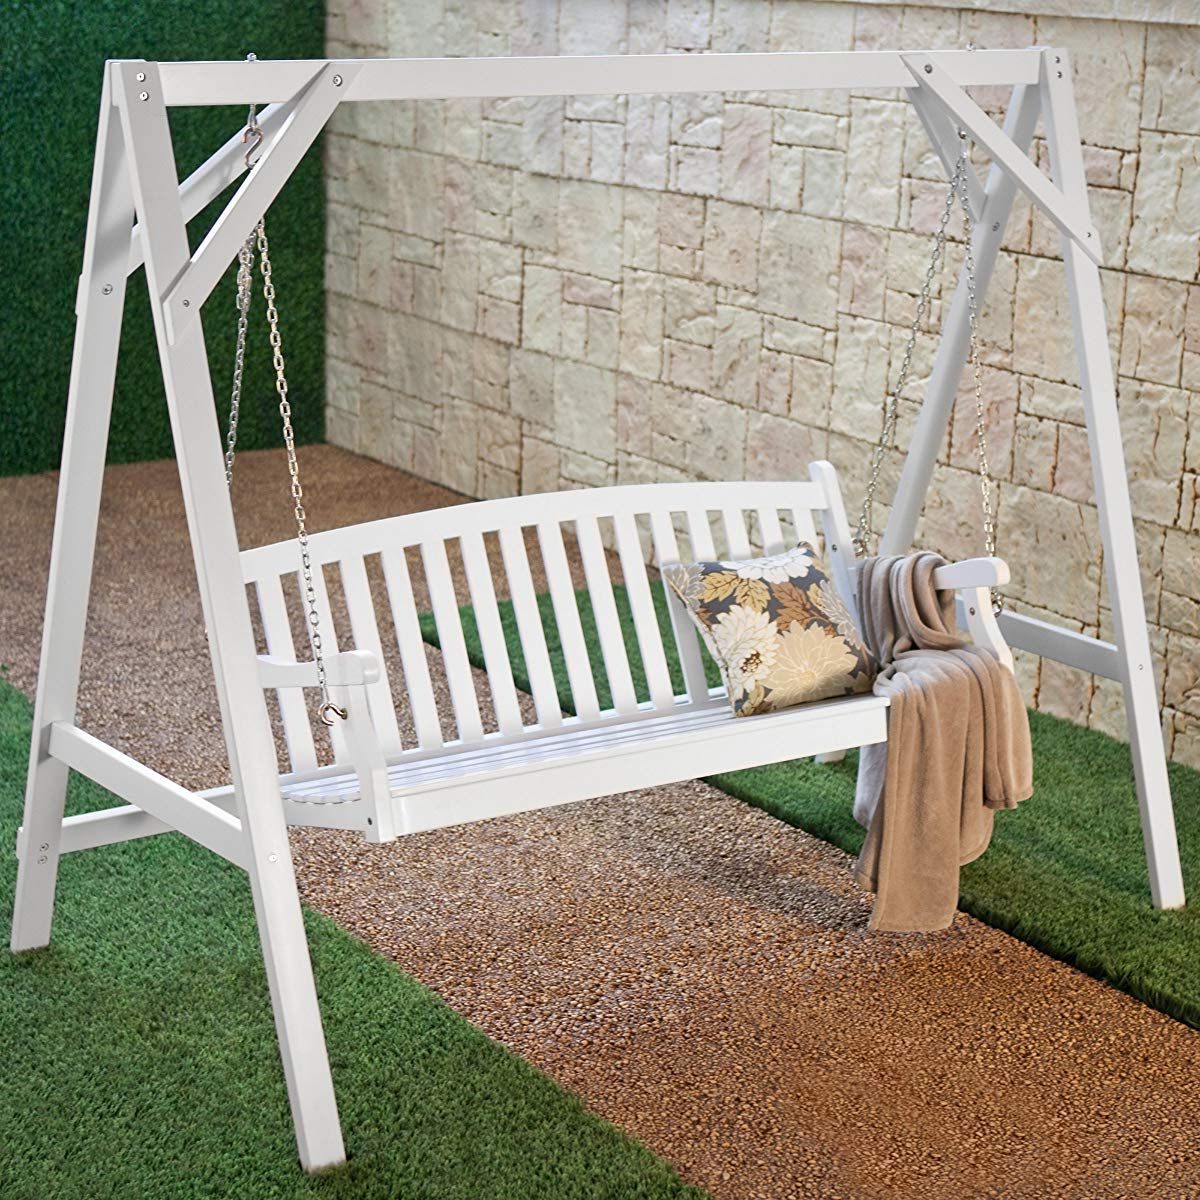 Hardwood Hanging Porch Swings With Stand Regarding Favorite Pin On Porch Swing (View 13 of 30)